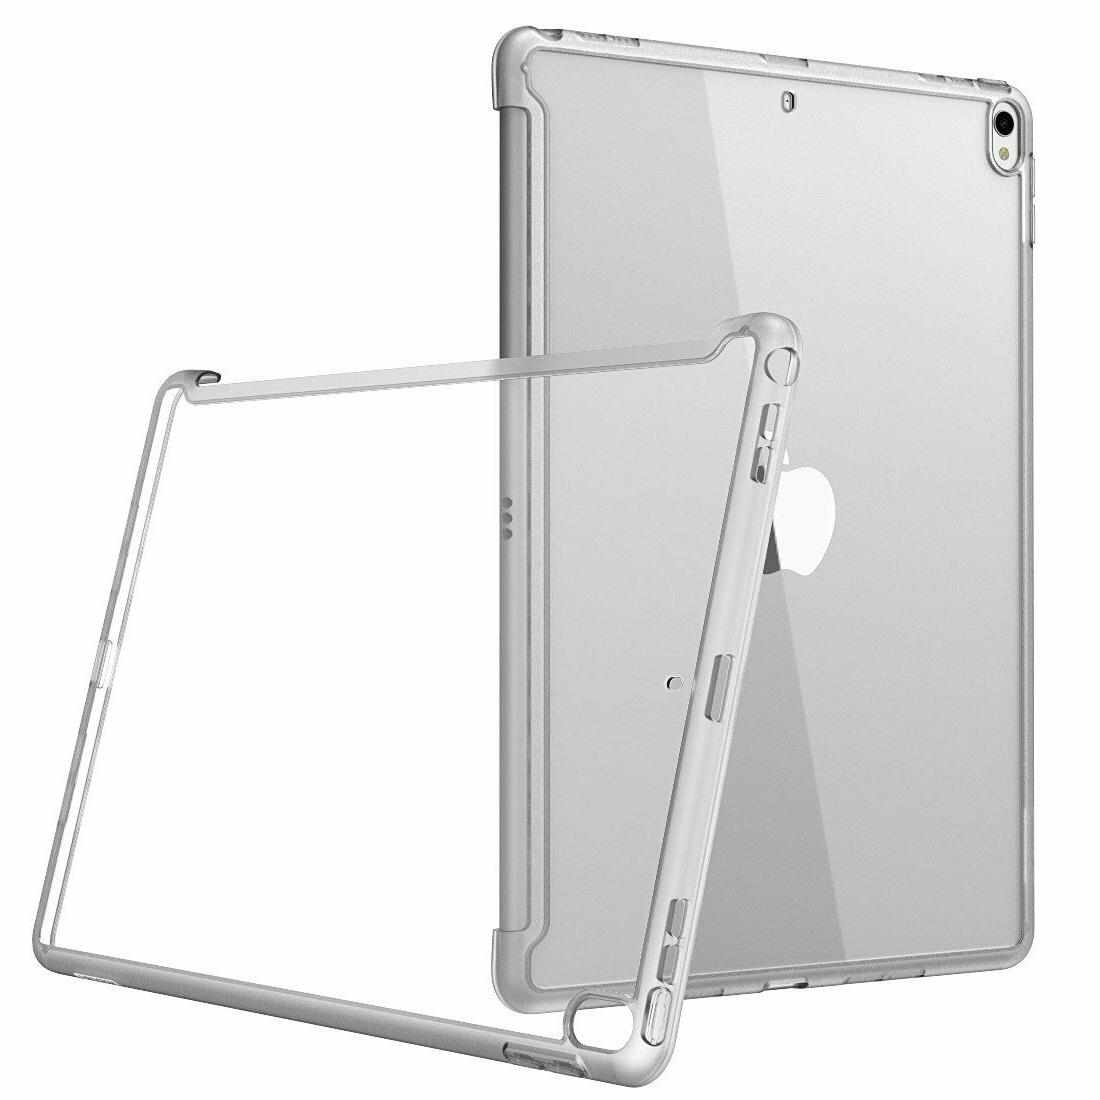 i-Blason for Pro 2017/2018 Clear Keyboard Cover